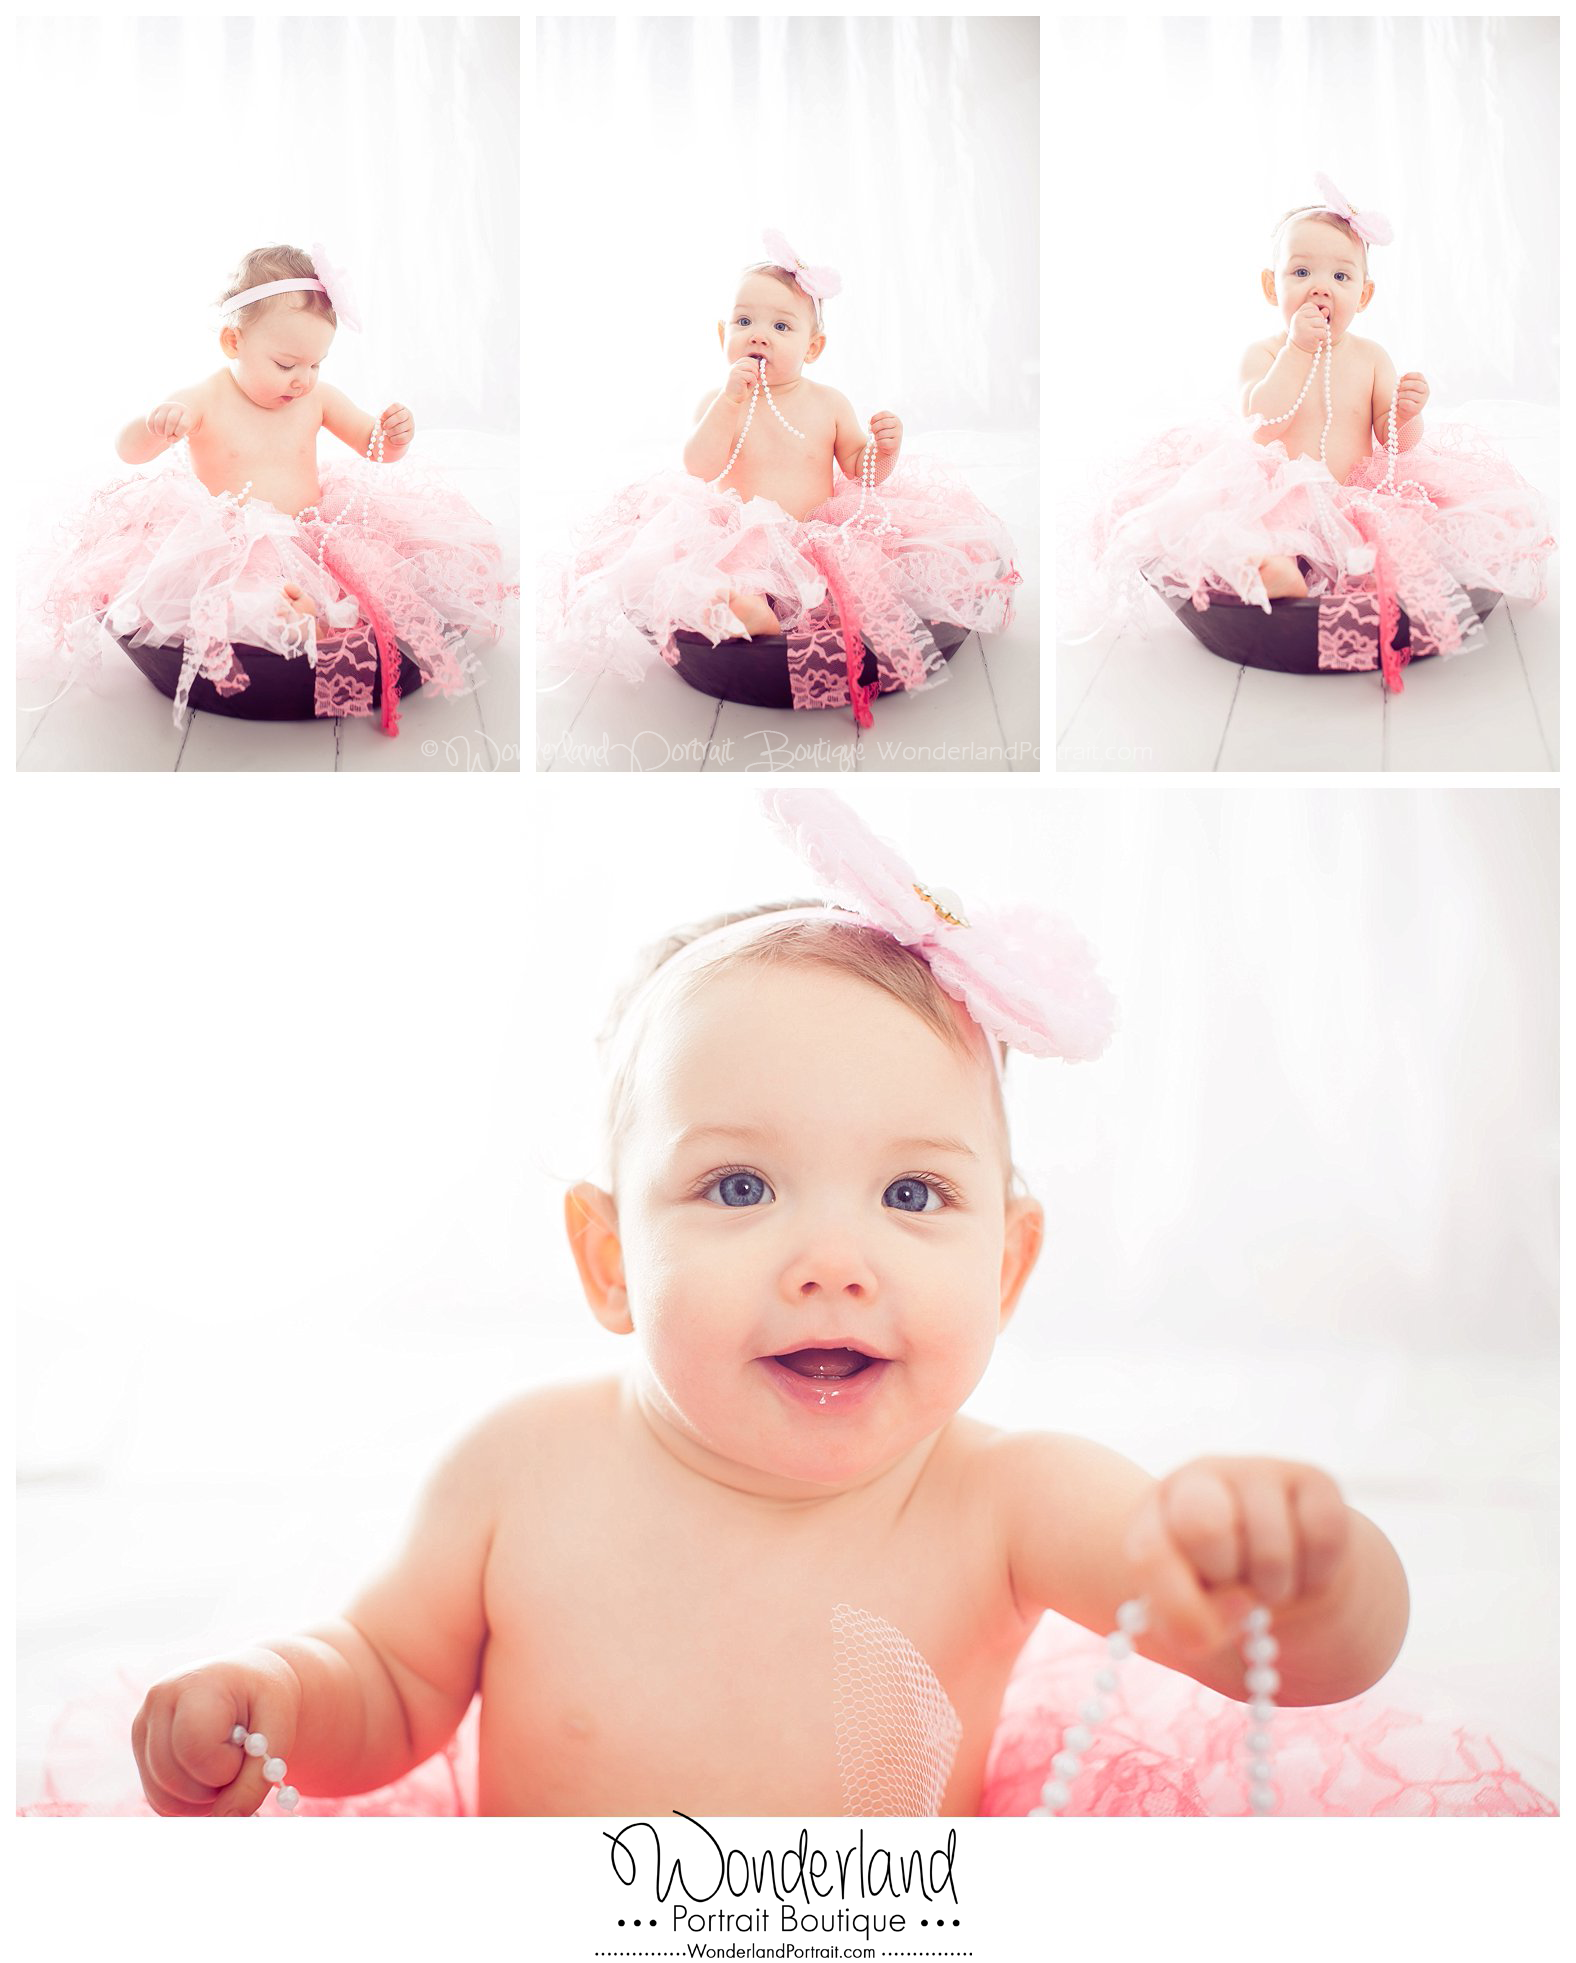 Baby in bowl Pink Tutu Lace Tutu Bucks County PA WonderlandPortrait.com